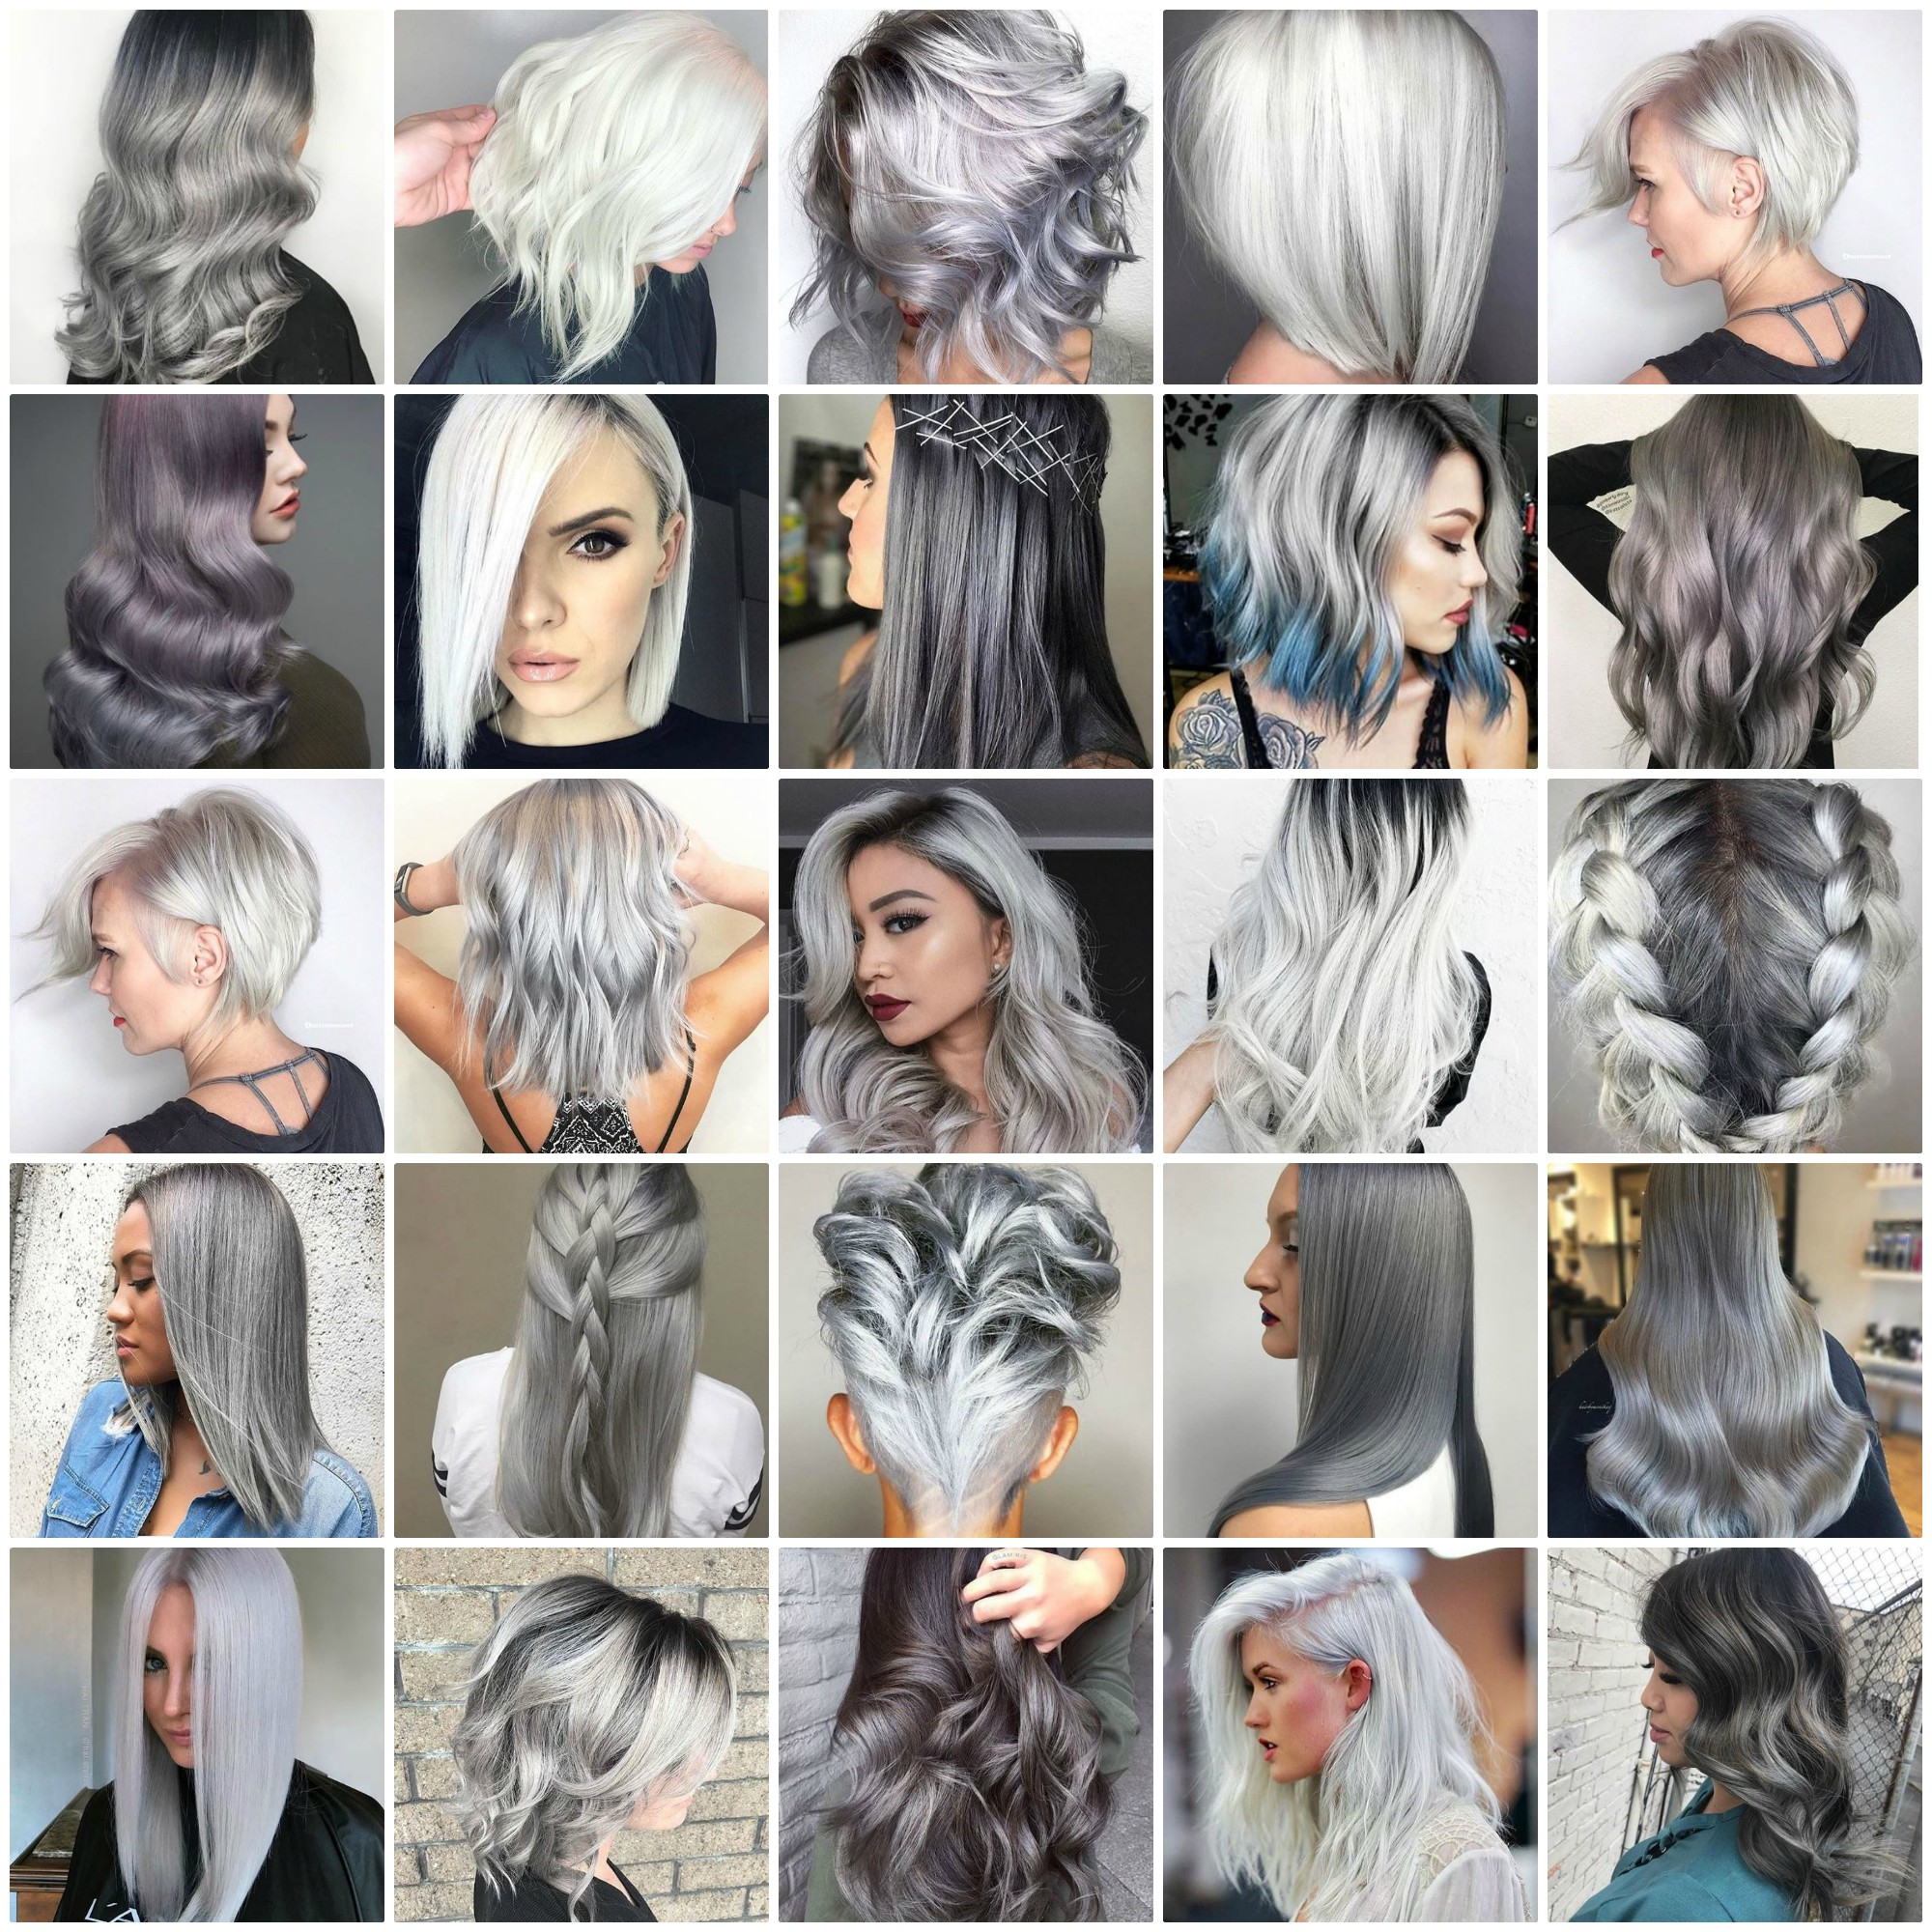 These 25 Silver and Platinum Looks Will Have You on Cloud Nine